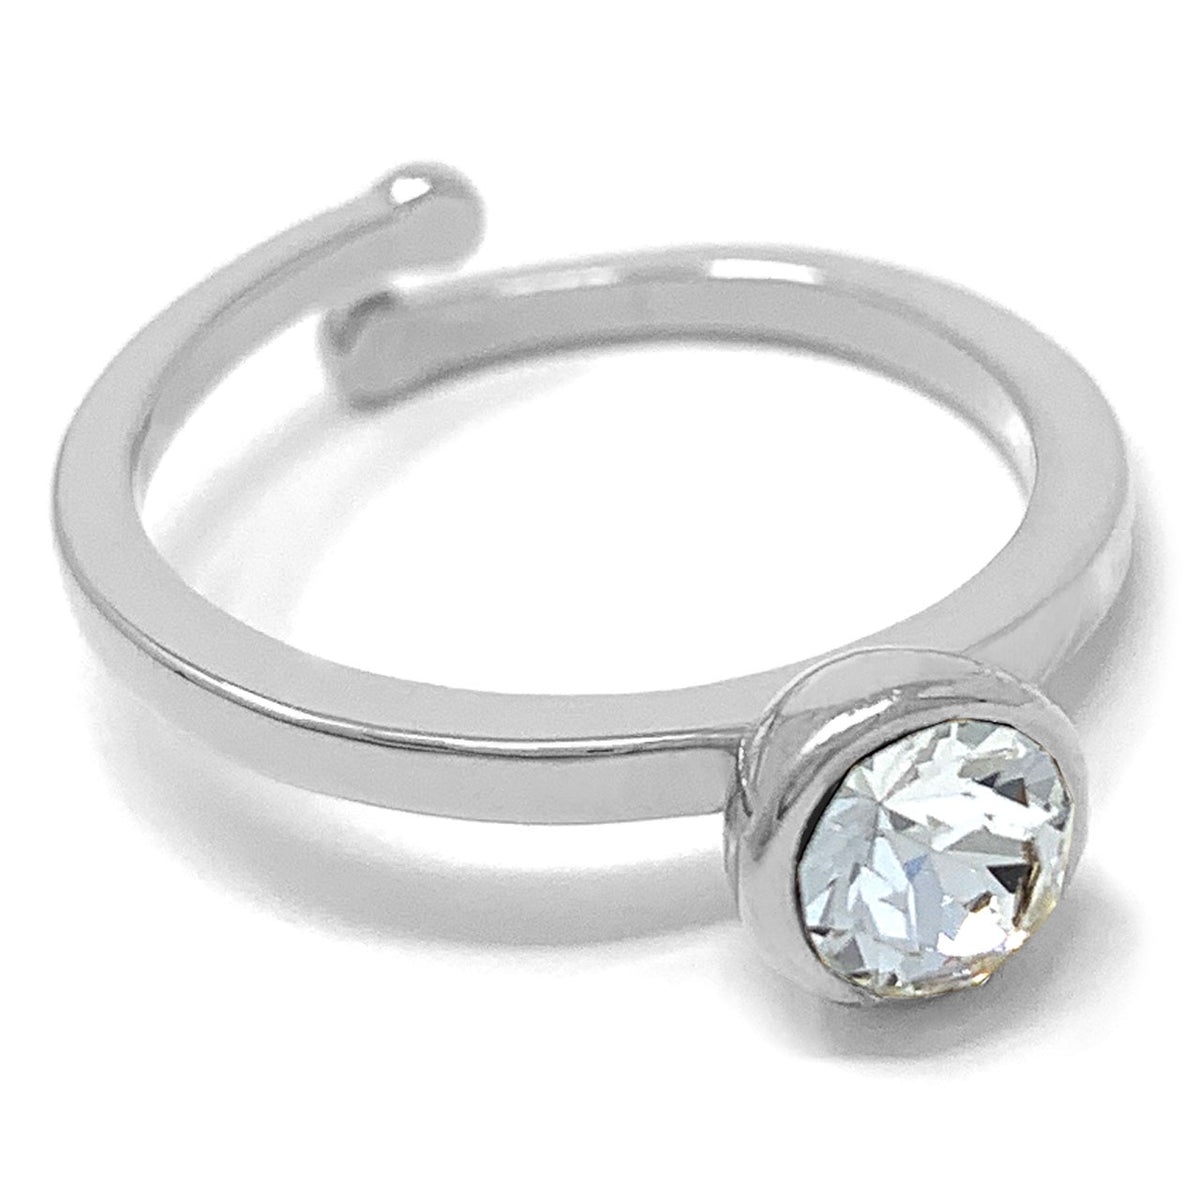 Harley Adjustable Ring with White Clear Round Crystals from Swarovski Silver Toned Rhodium Plated - Ed Heart